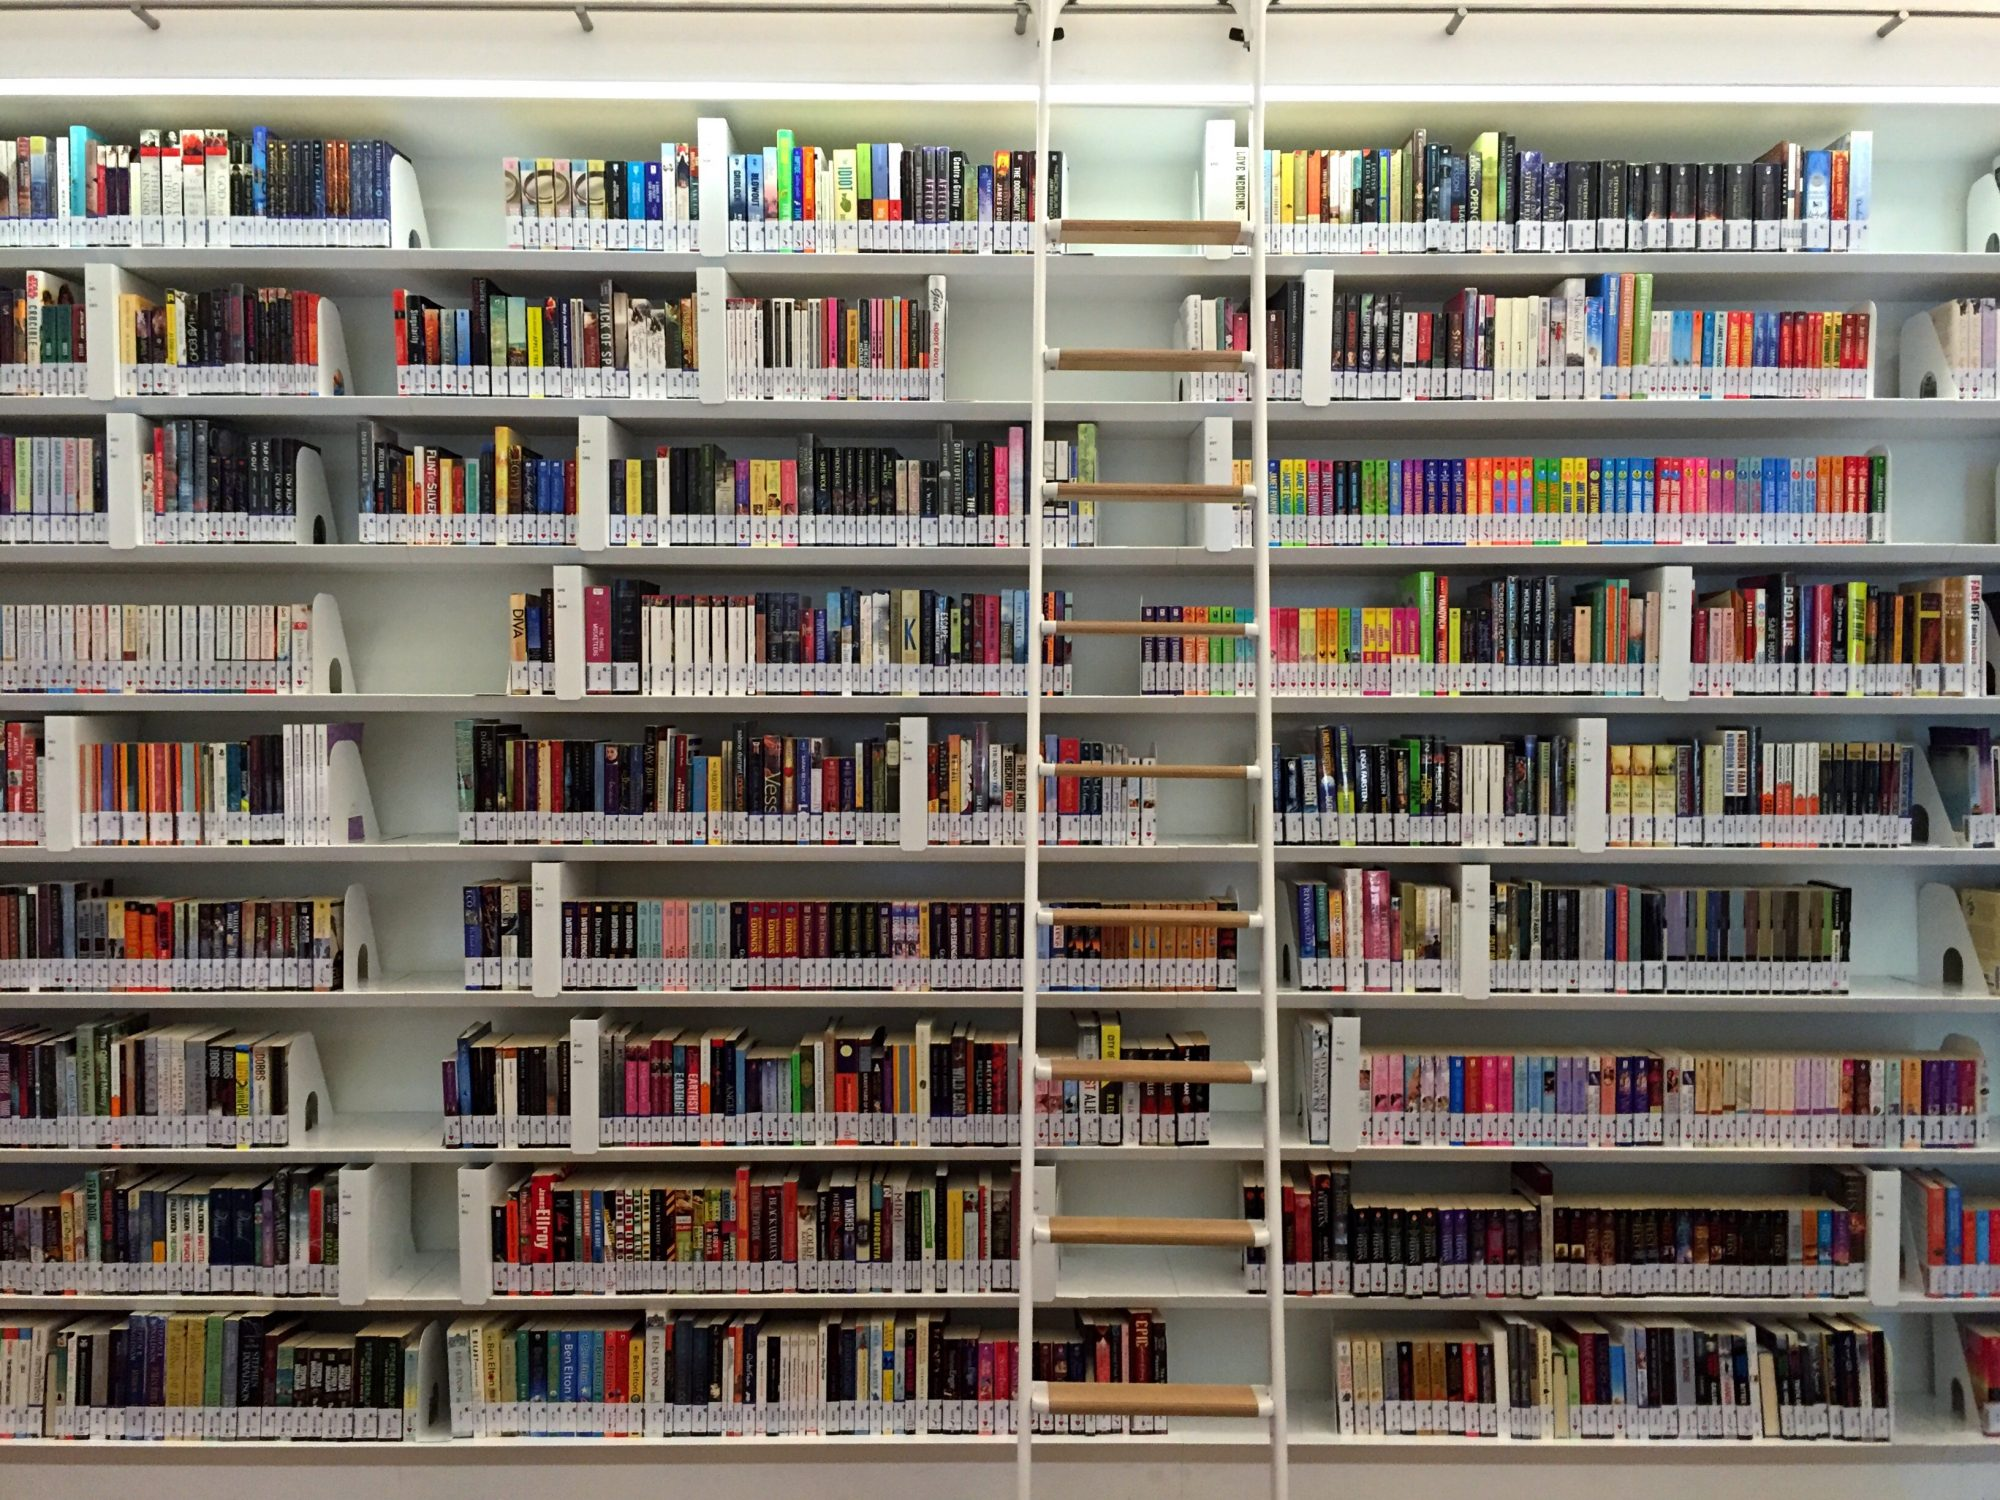 5 Surprisingly Great Freebies You Can Get With Your Library Card